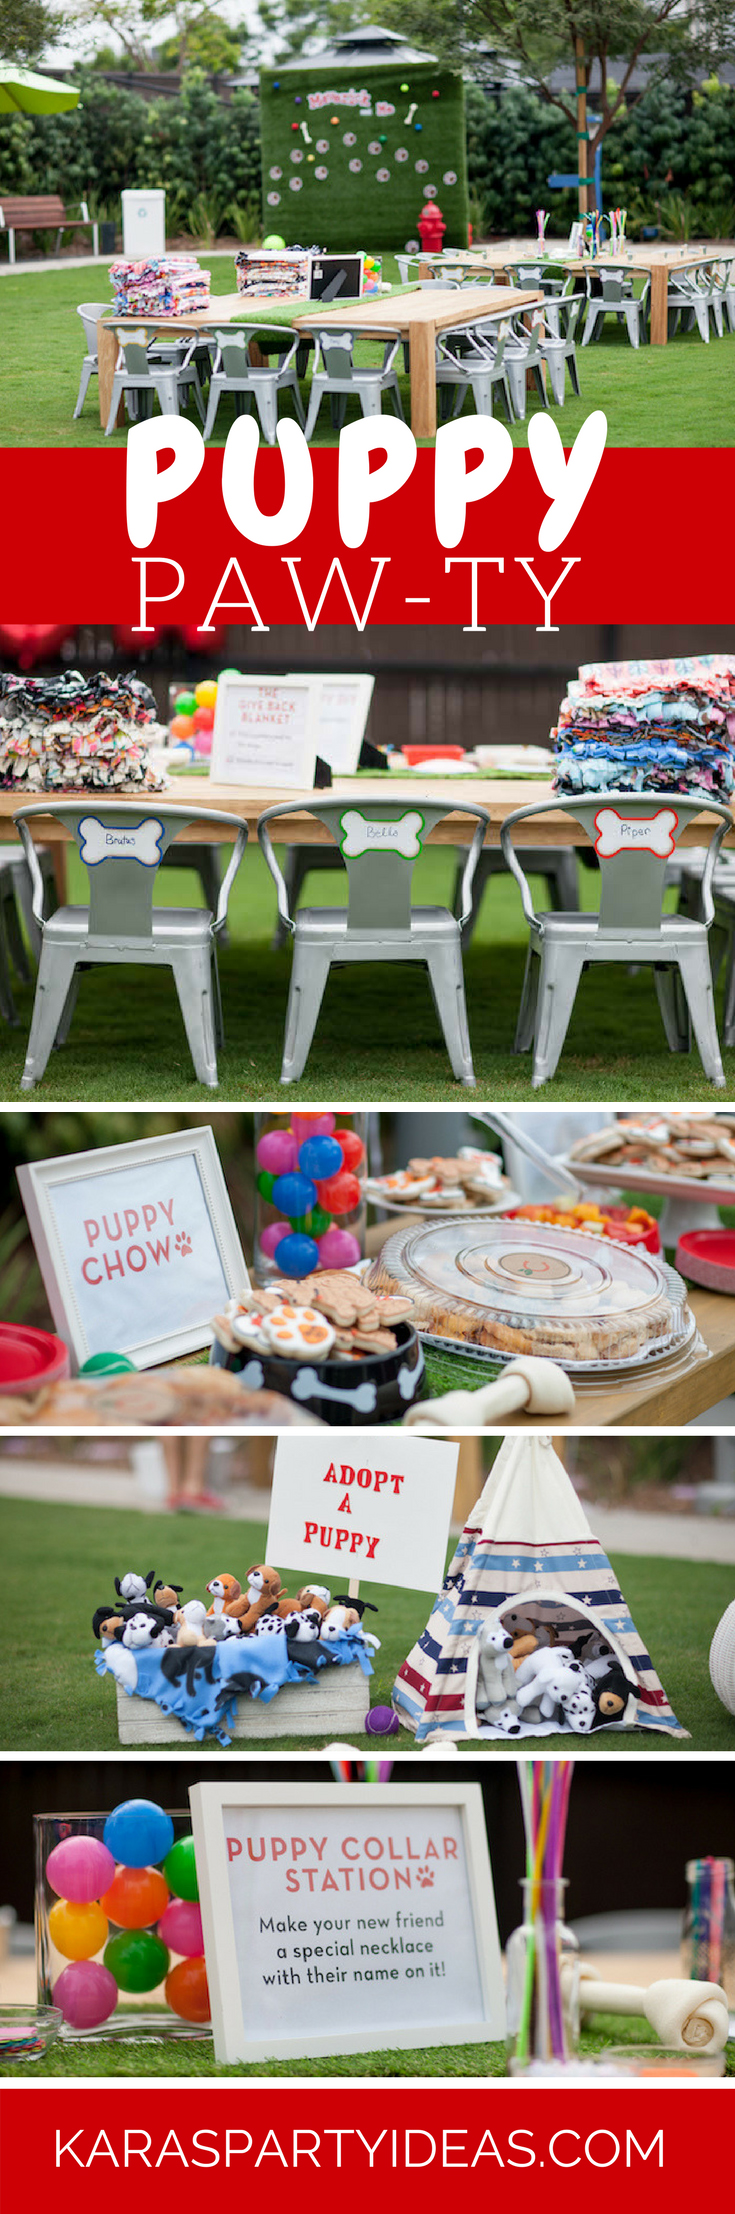 Puppy Paw-ty via Kara's Party Ideas - KarasPartyIdeas.com